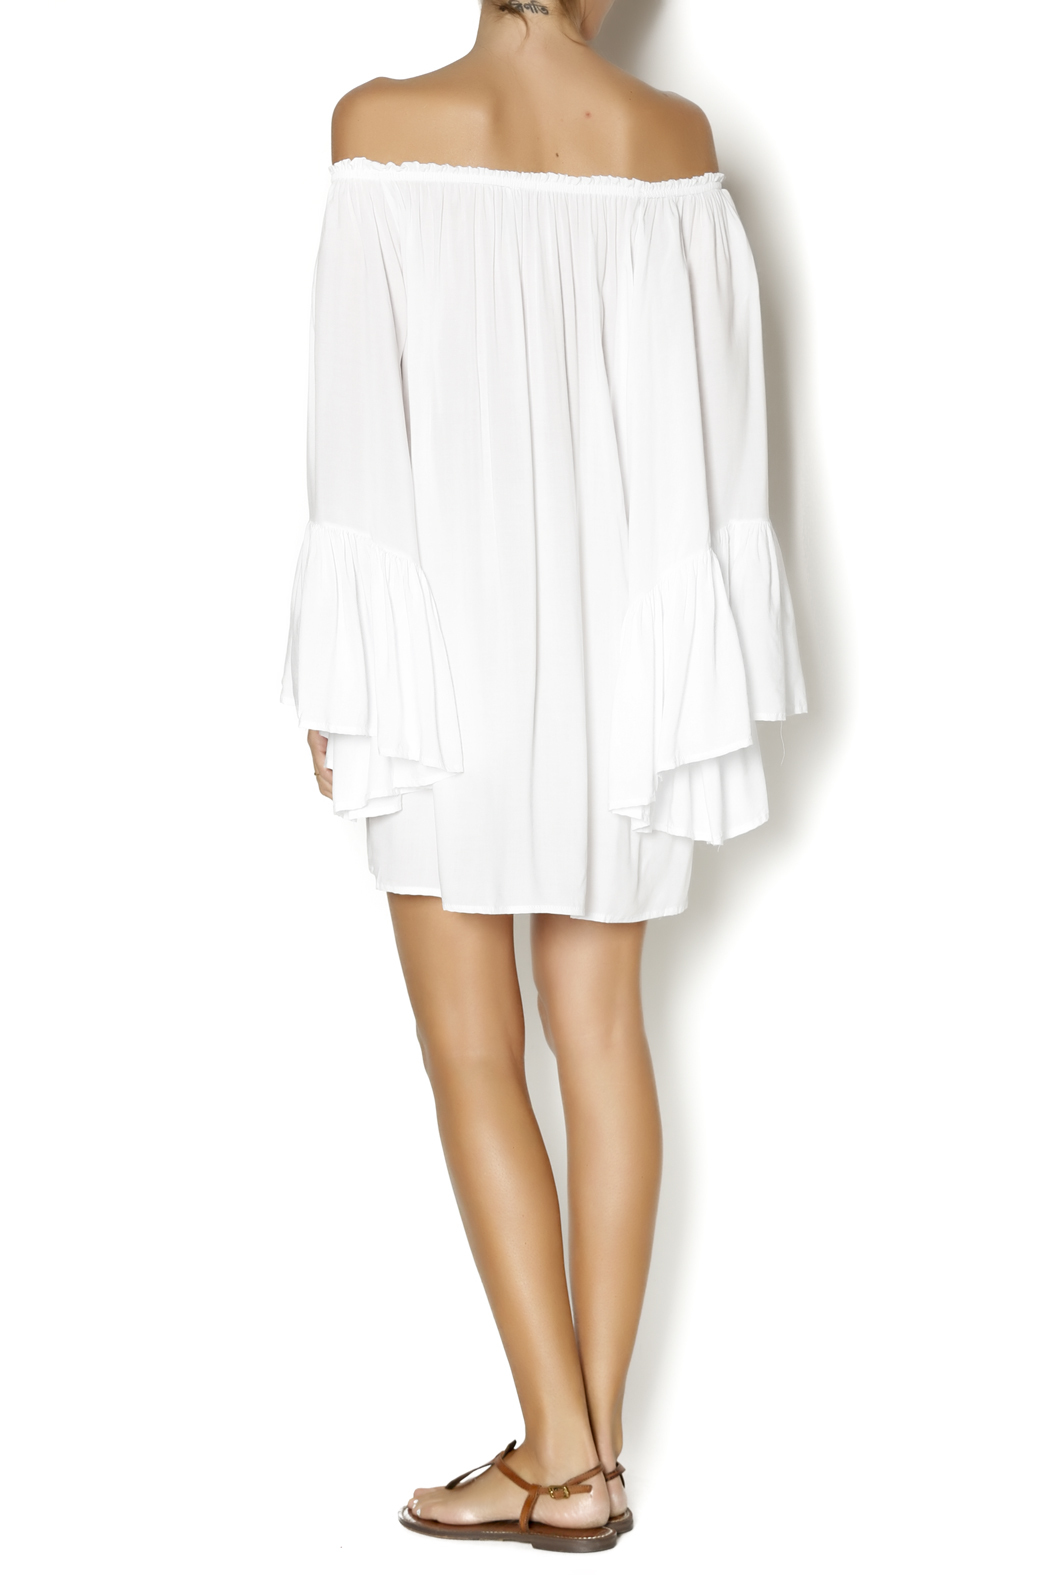 Elan White Boho Top - Side Cropped Image